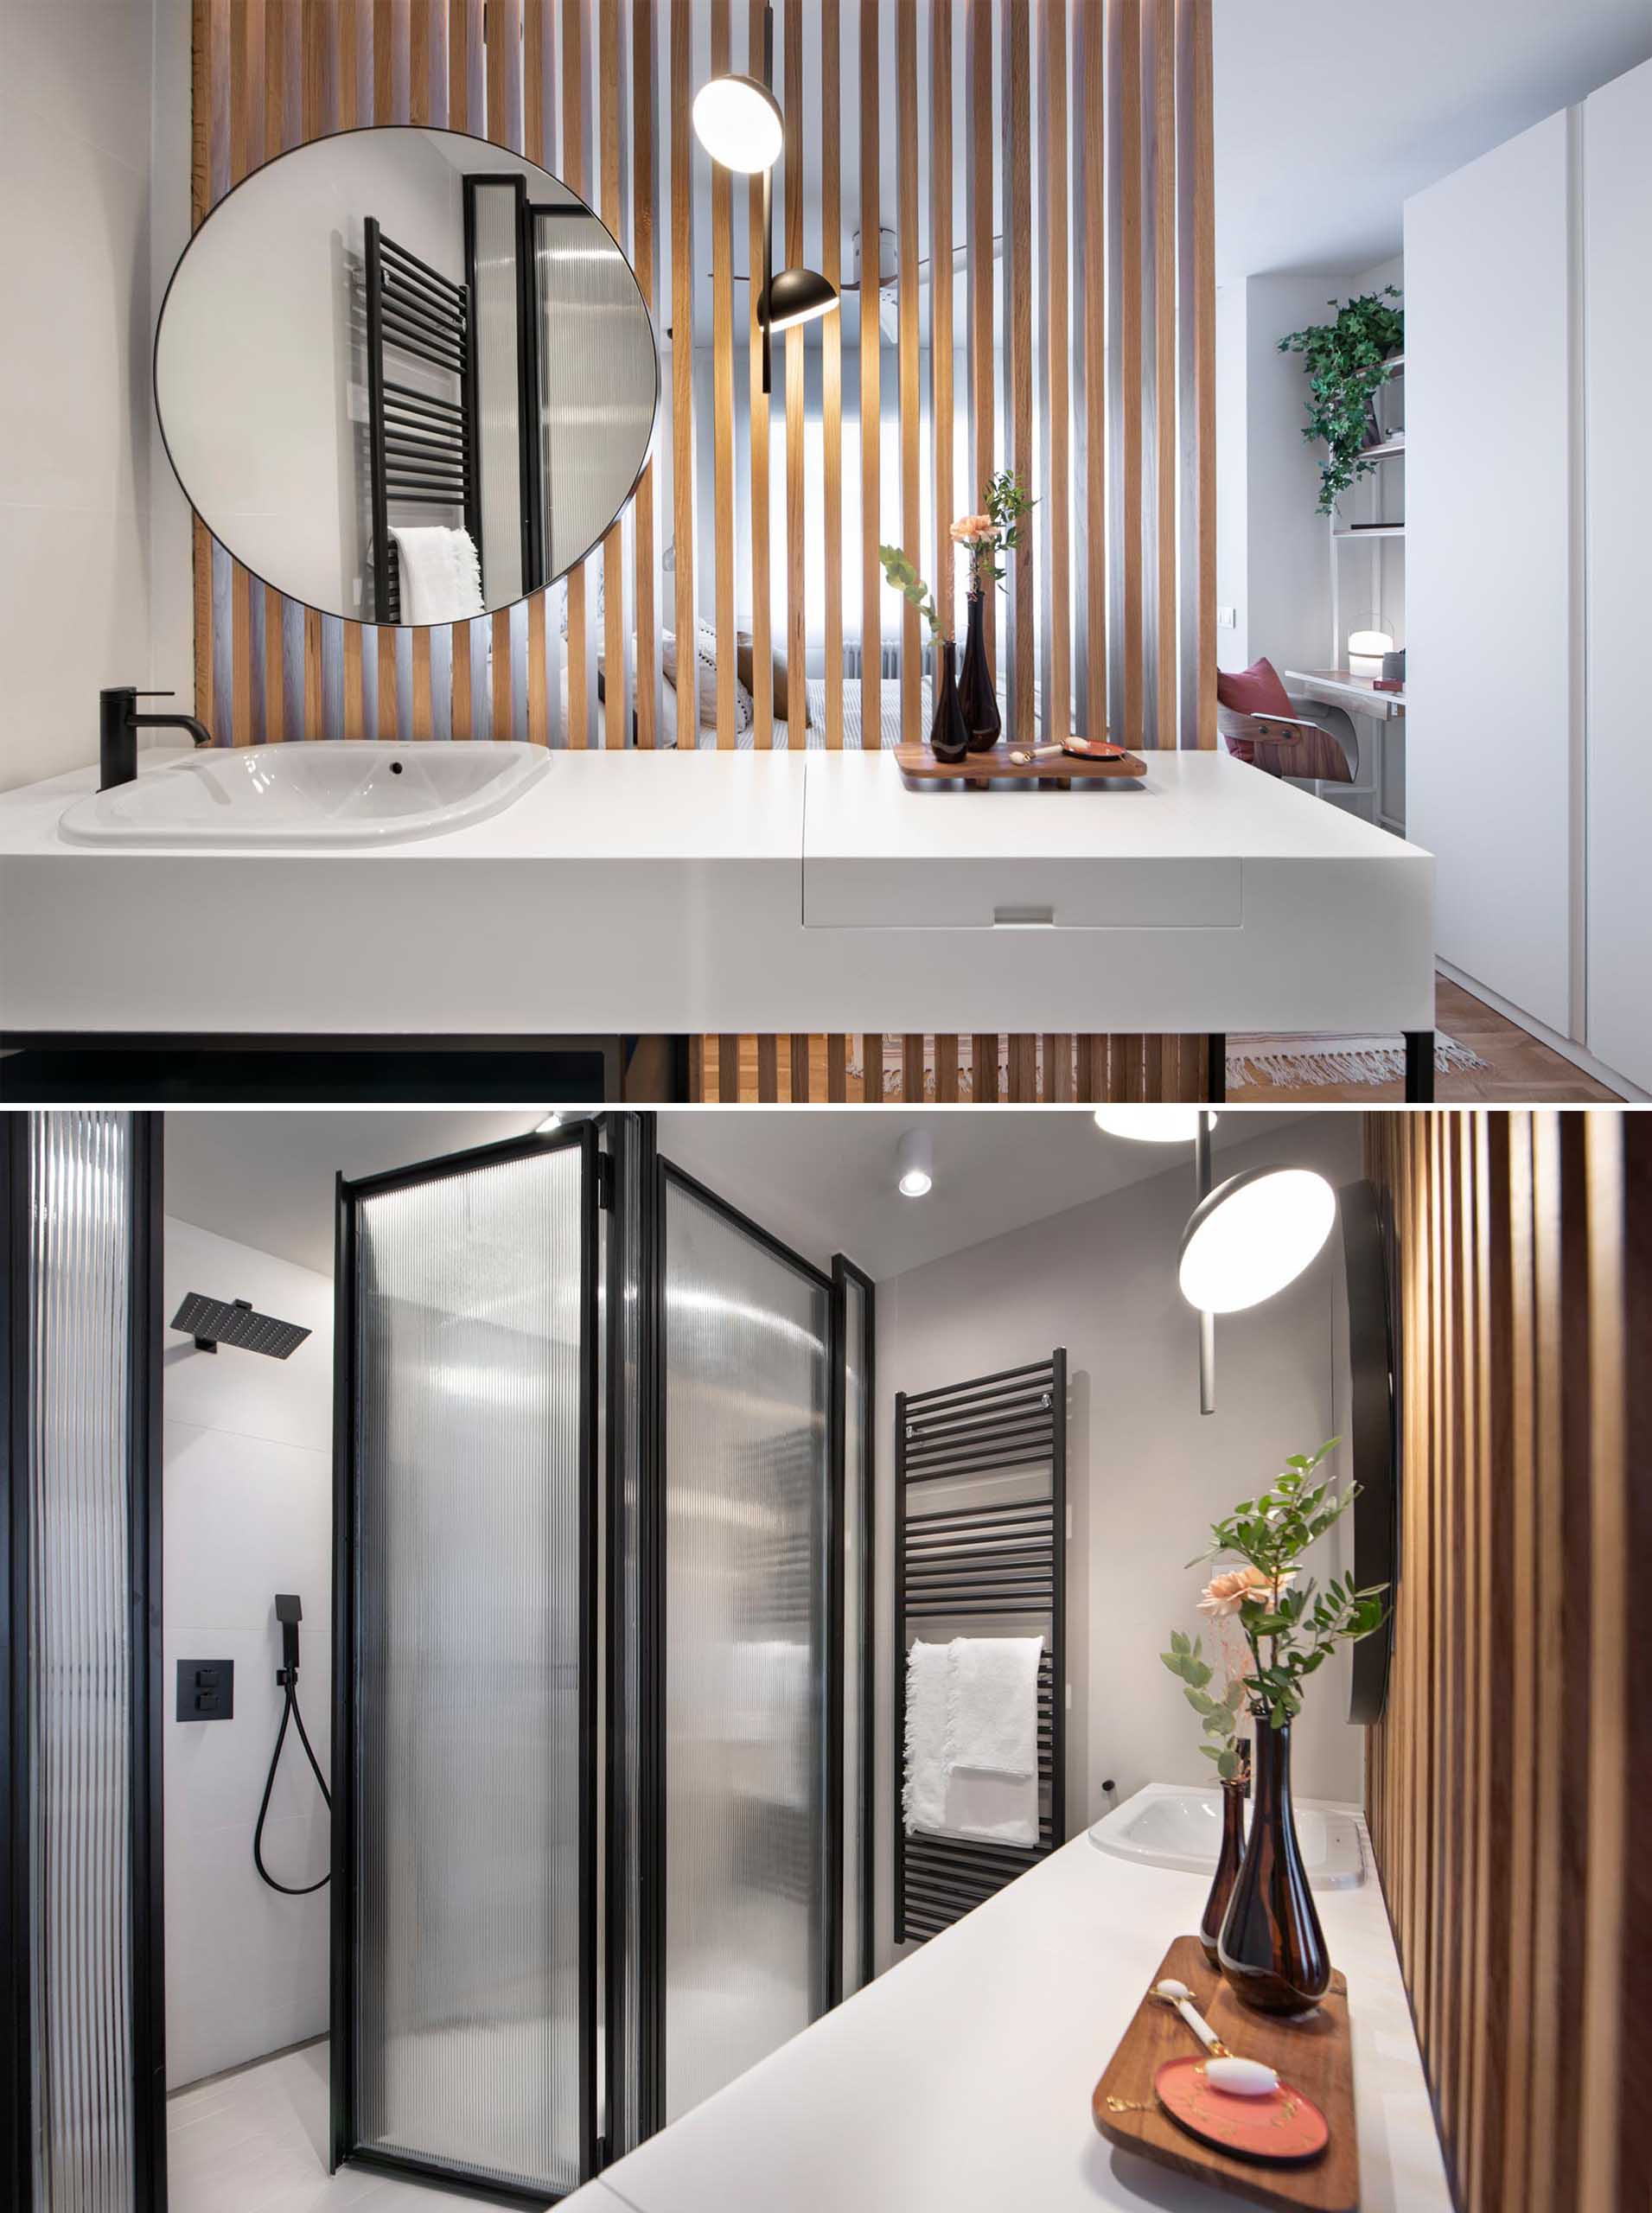 This en-suite bathroom is separated from the bedroom by a wood slat wall, while black framed glass walls hide the shower and toilet, and the vanity has a thick white countertop that hides a makeup area.